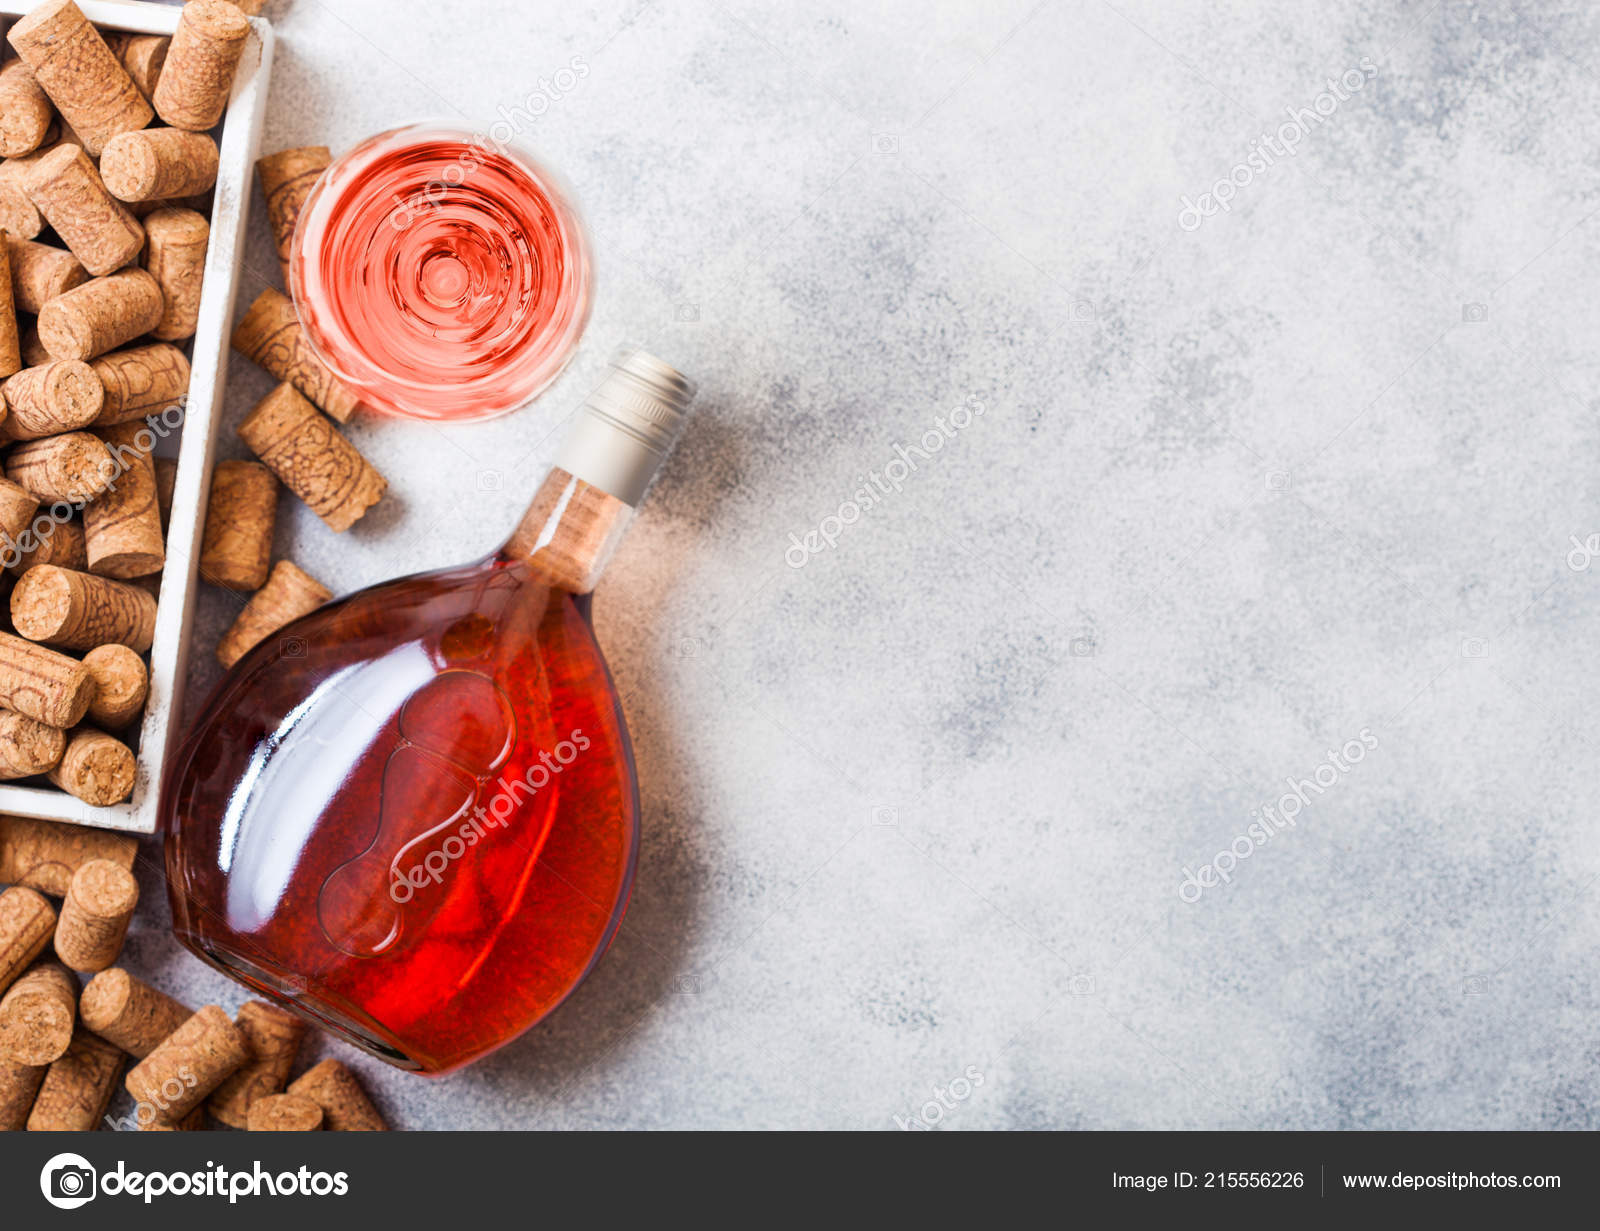 57faae41b30045 Bottle and glasses of pink rose wine with box of corks on stone kitchen  table background. Top view.– stock image